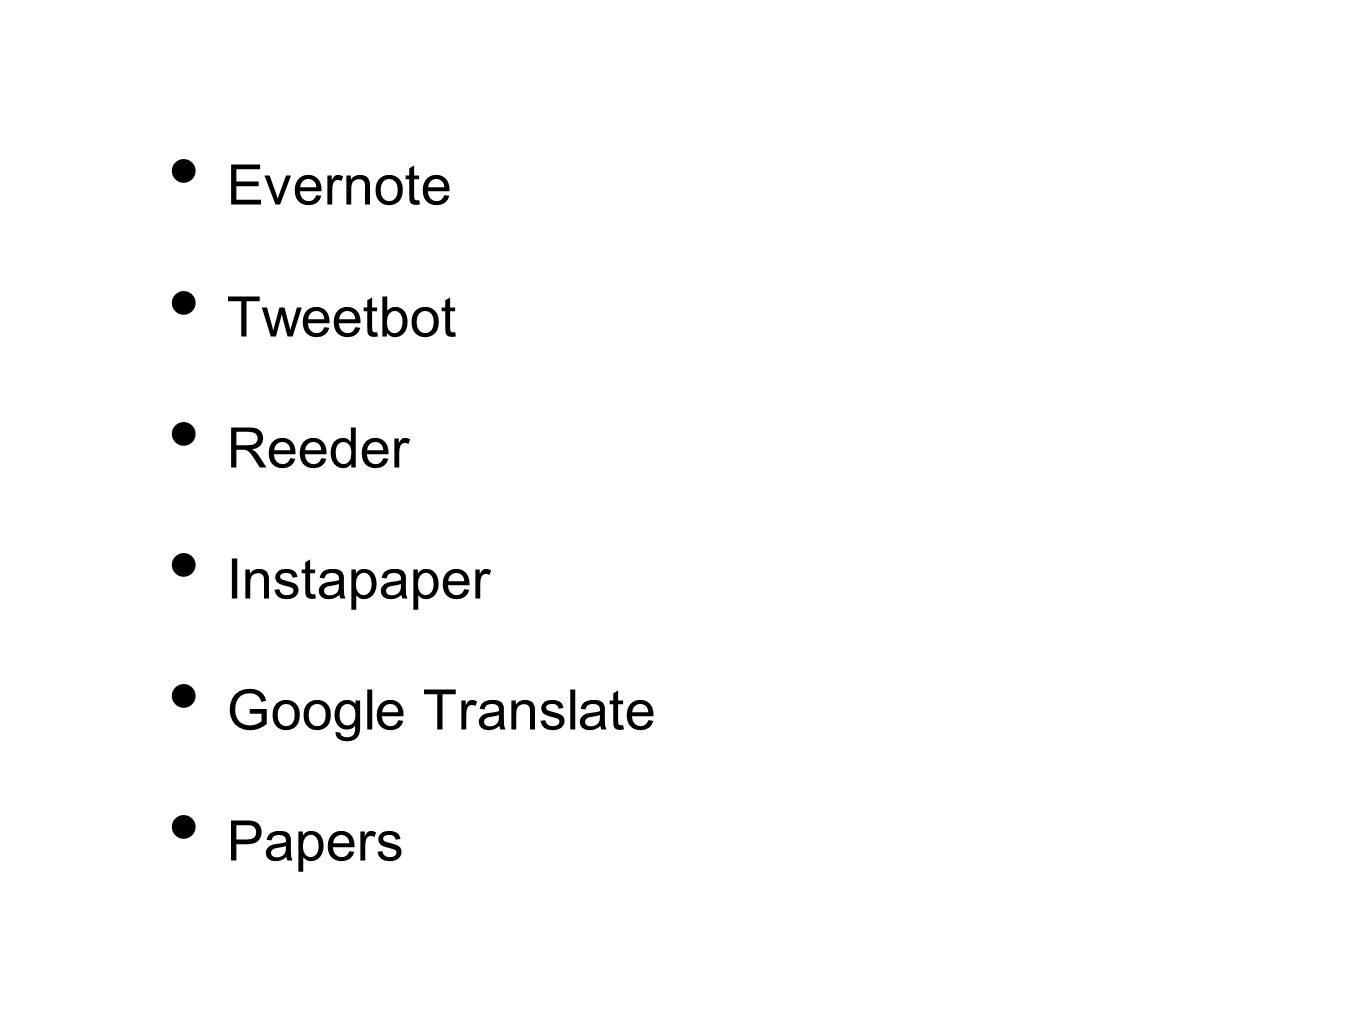 Evernote Tweetbot Reeder Instapaper Google Translate Papers